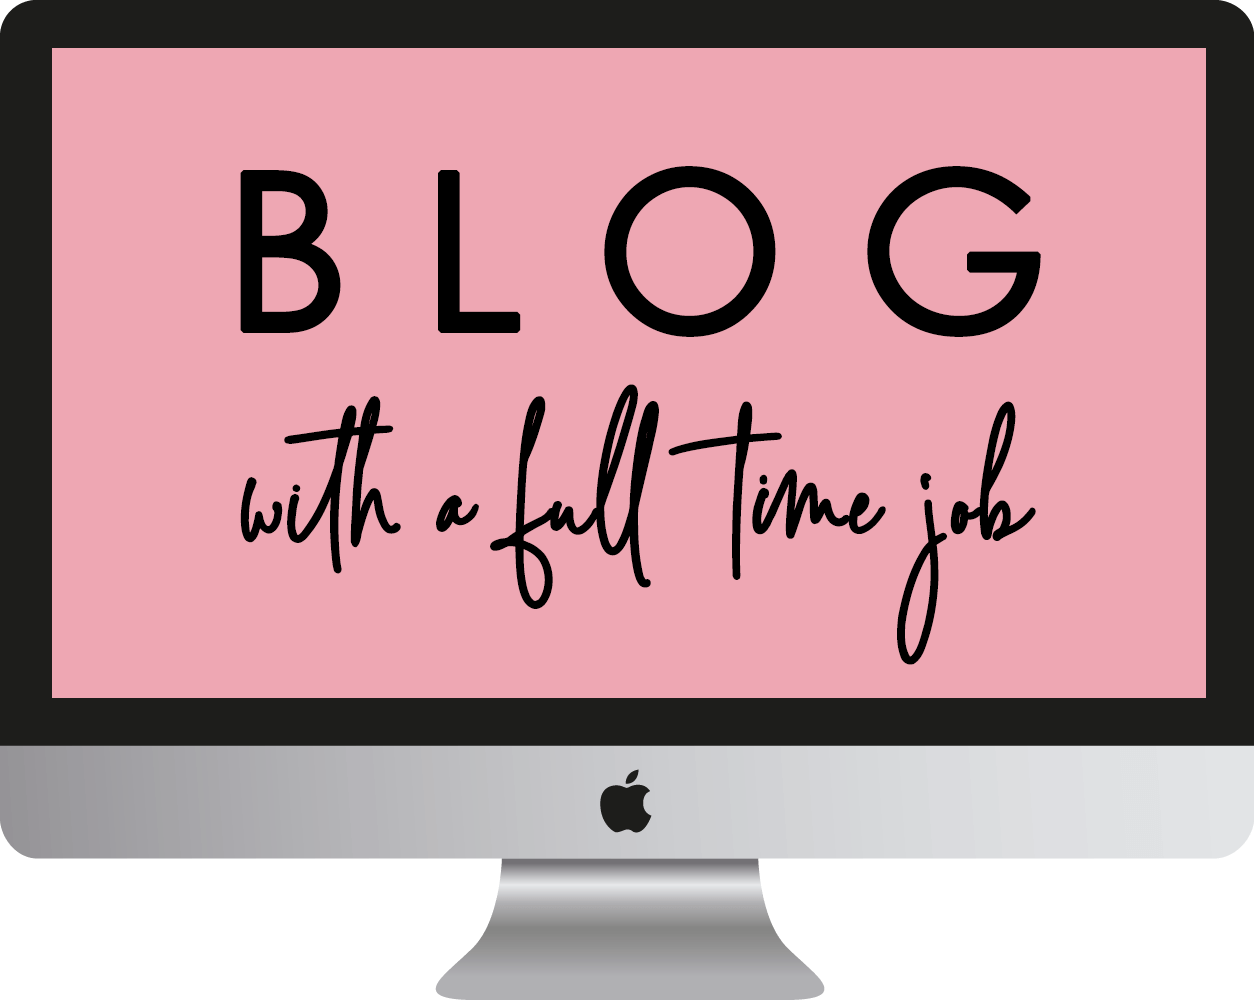 Blog With A Full Time Job